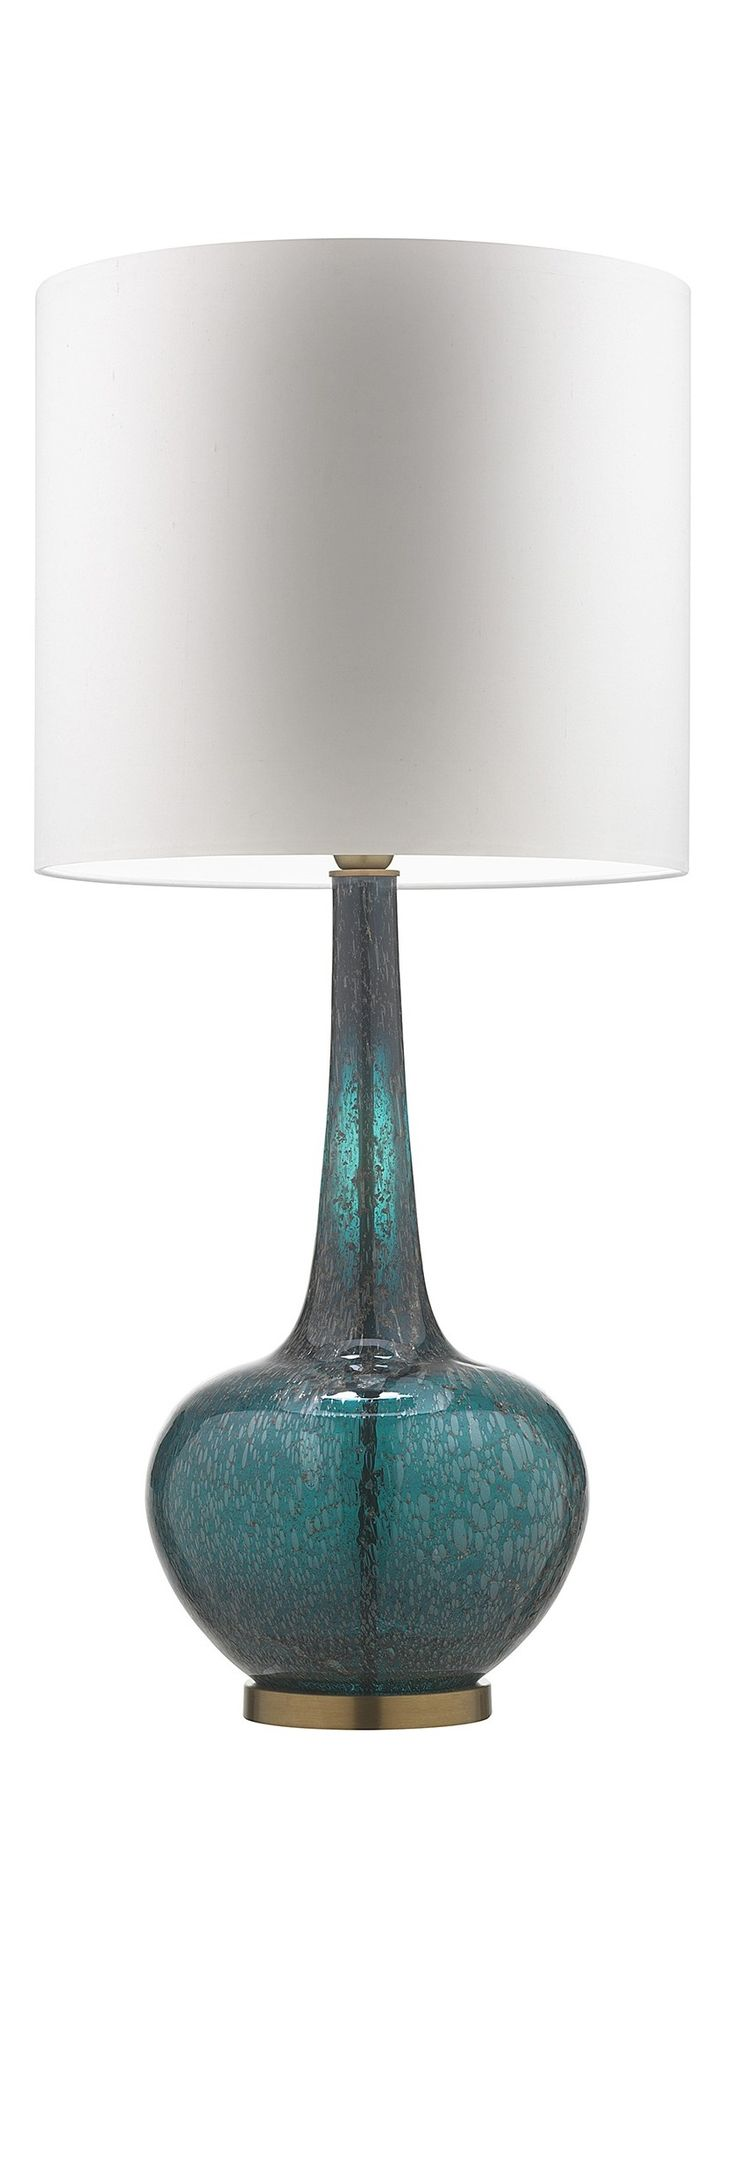 Teal lamp shades table lamps style light design most decorative - Teal Lamp Shades Table Lamps Style Light Design Most Decorative Blue Lamp Blue Lamps Lamps Download